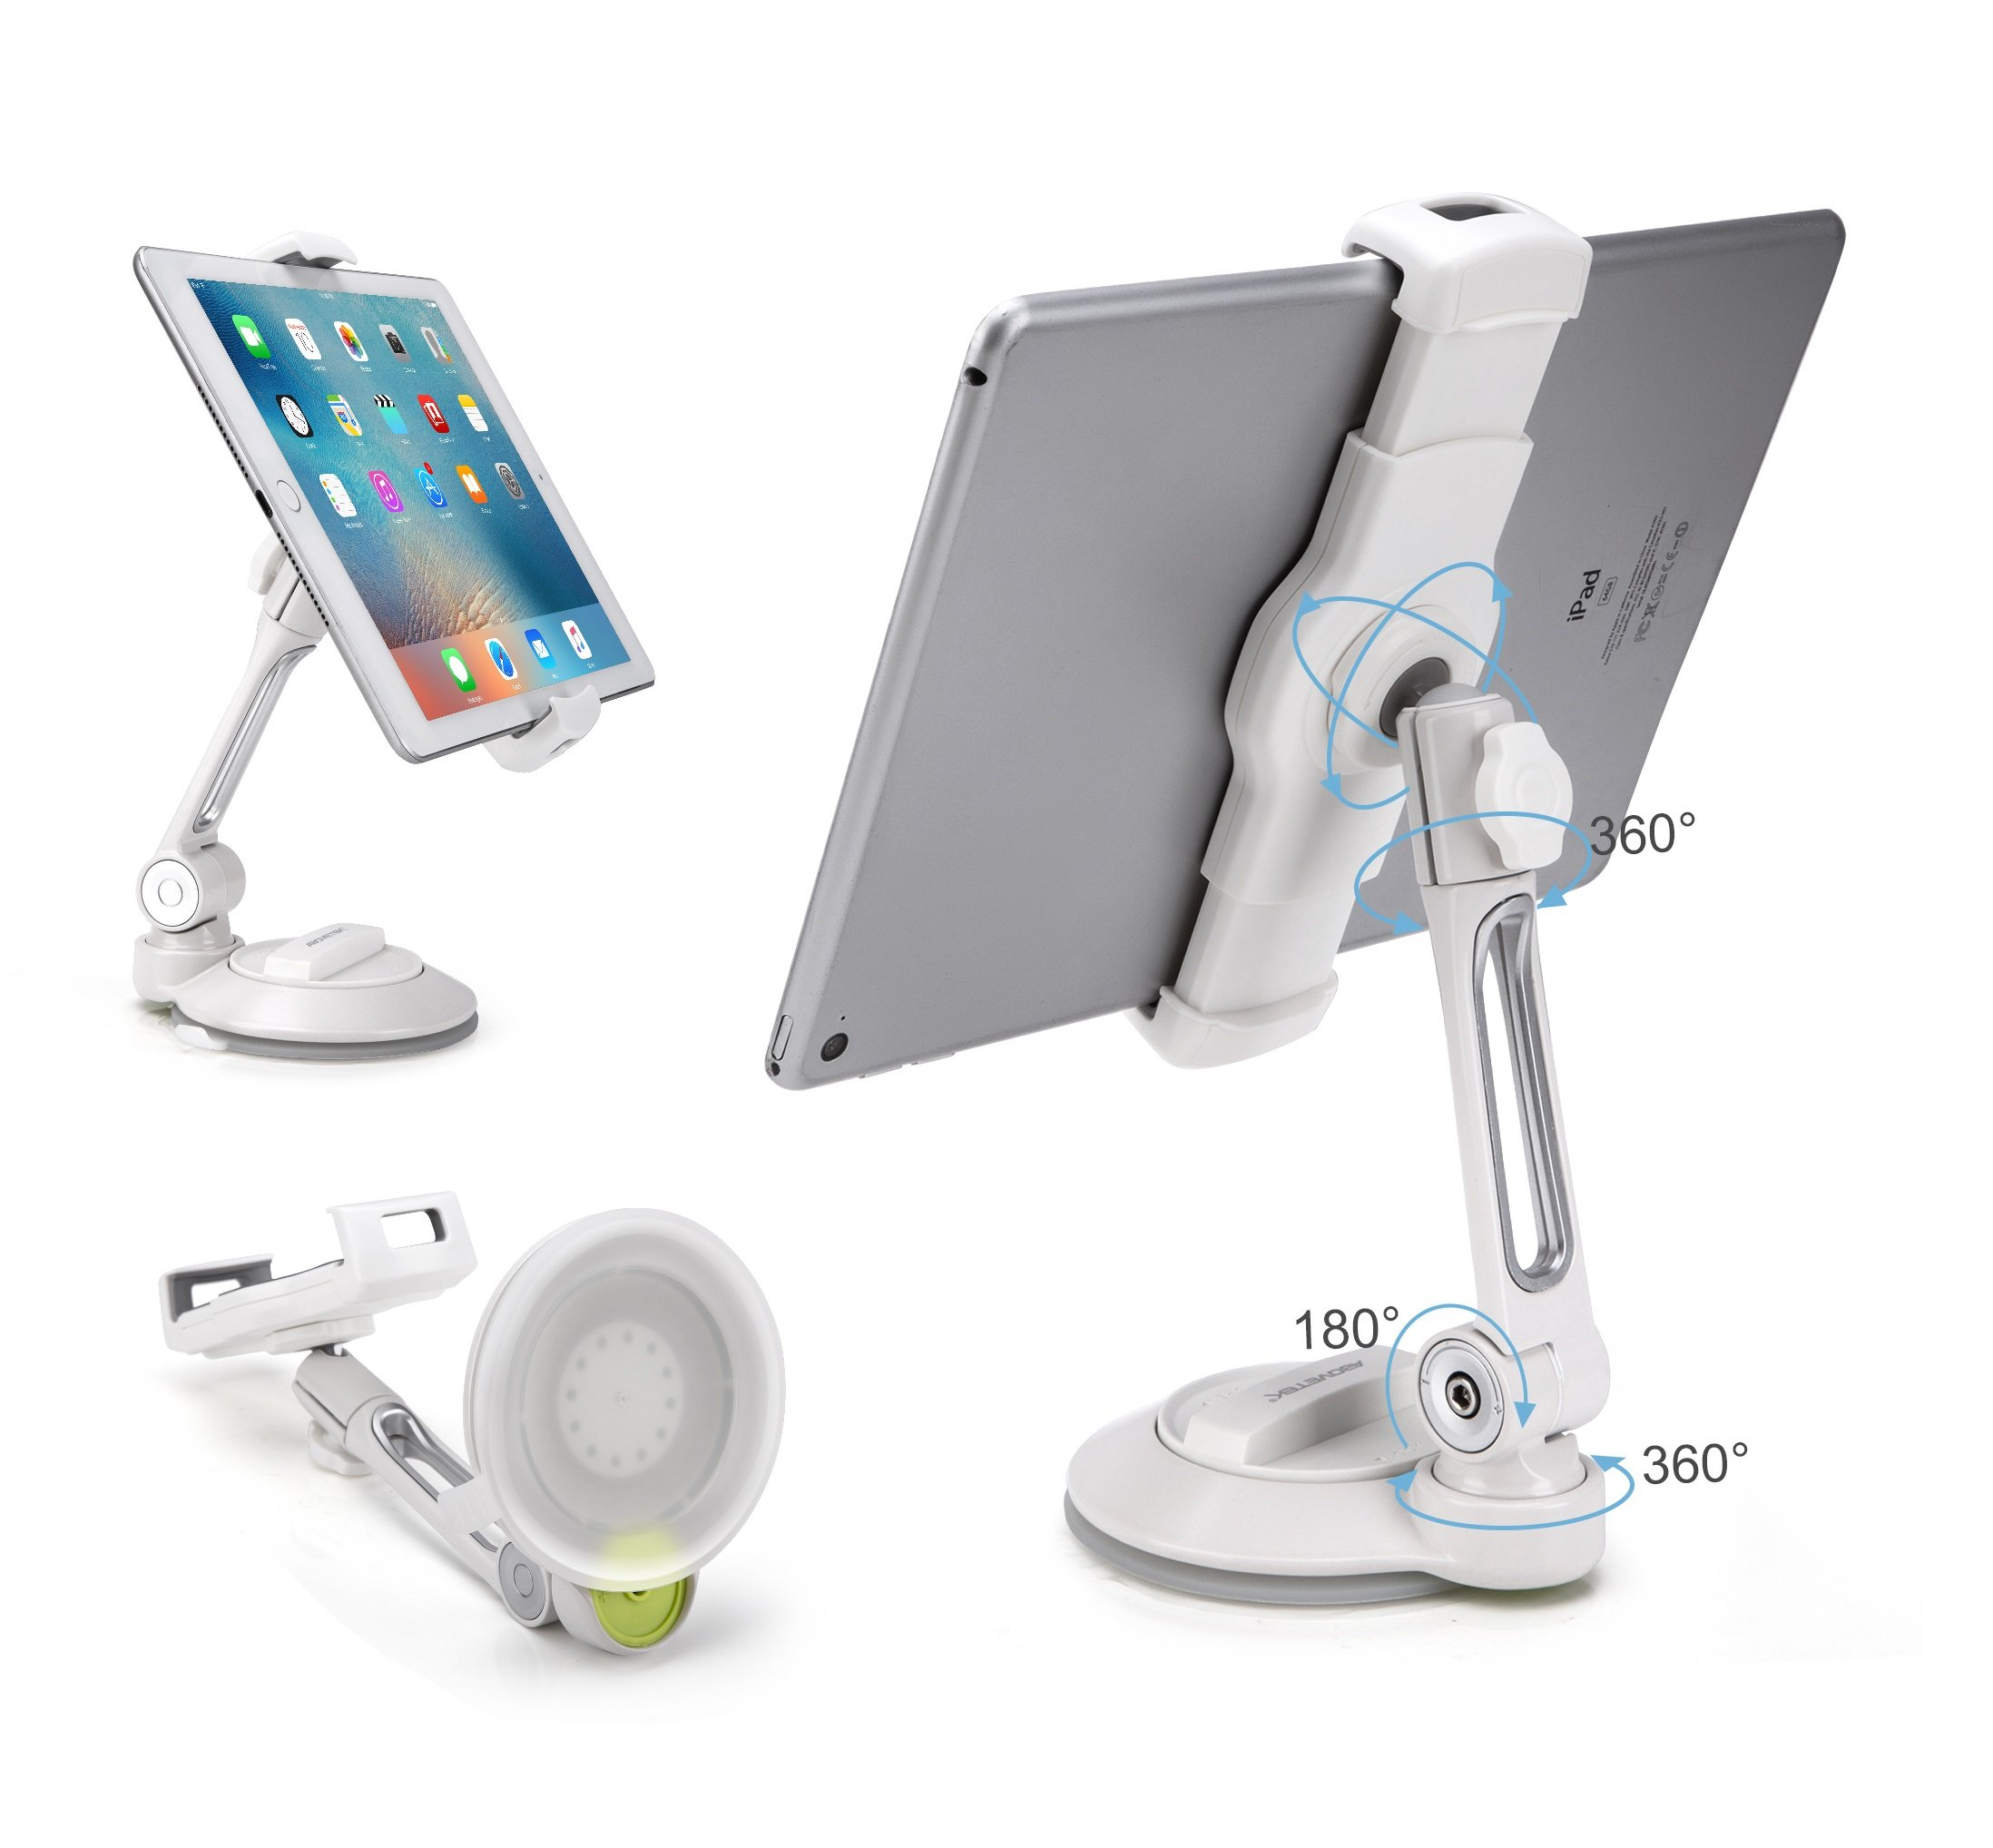 Grip Tight iPad Suction Cup Holder Fits 4-11'' Display, Large Swivel Sticky Tablet Phone Stand Pad to Mount Smartphone, iPhone 5 6 7 iPad Mini, Cell on Smooth Surface Desk Countertop Mirror Car Window by AboveTEK